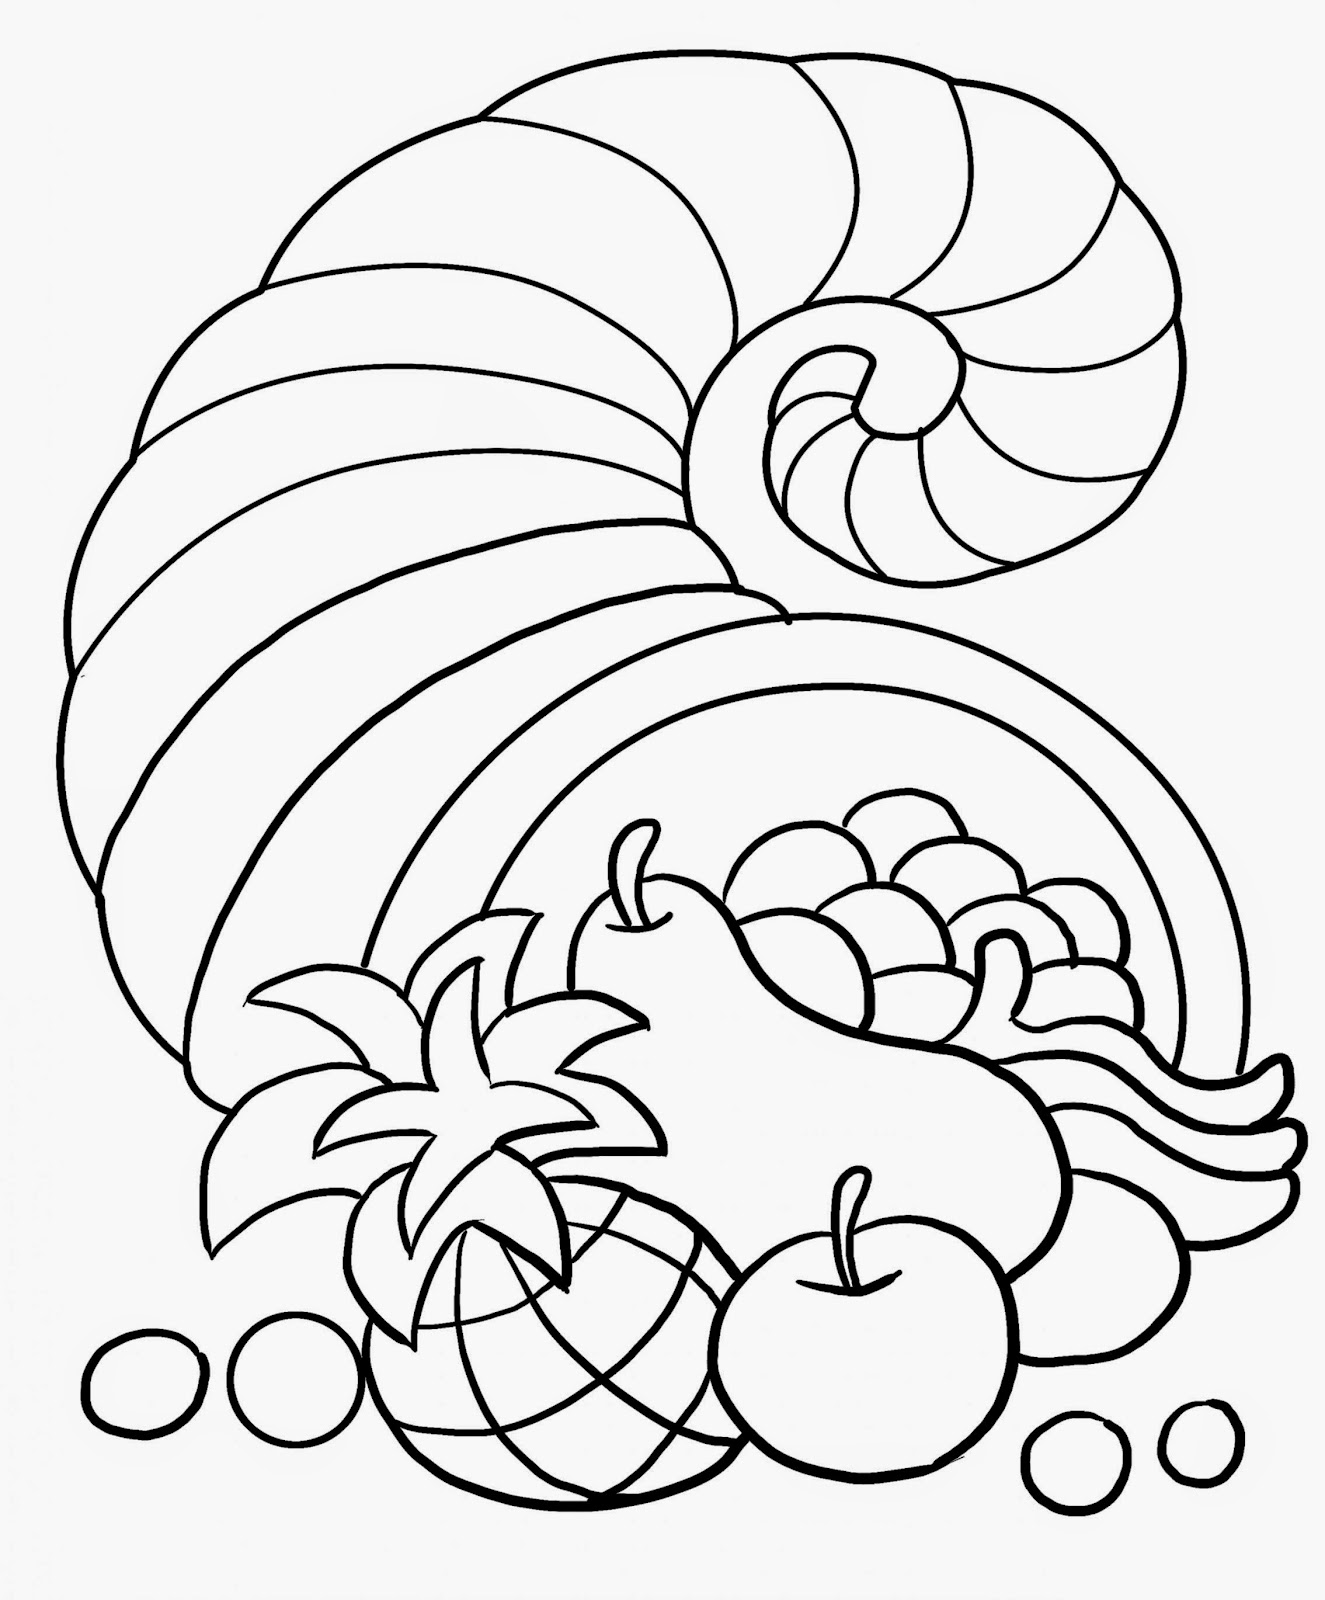 Thanksgiving coloring pages kids free coloring sheet for Thanksgiving turkey coloring page